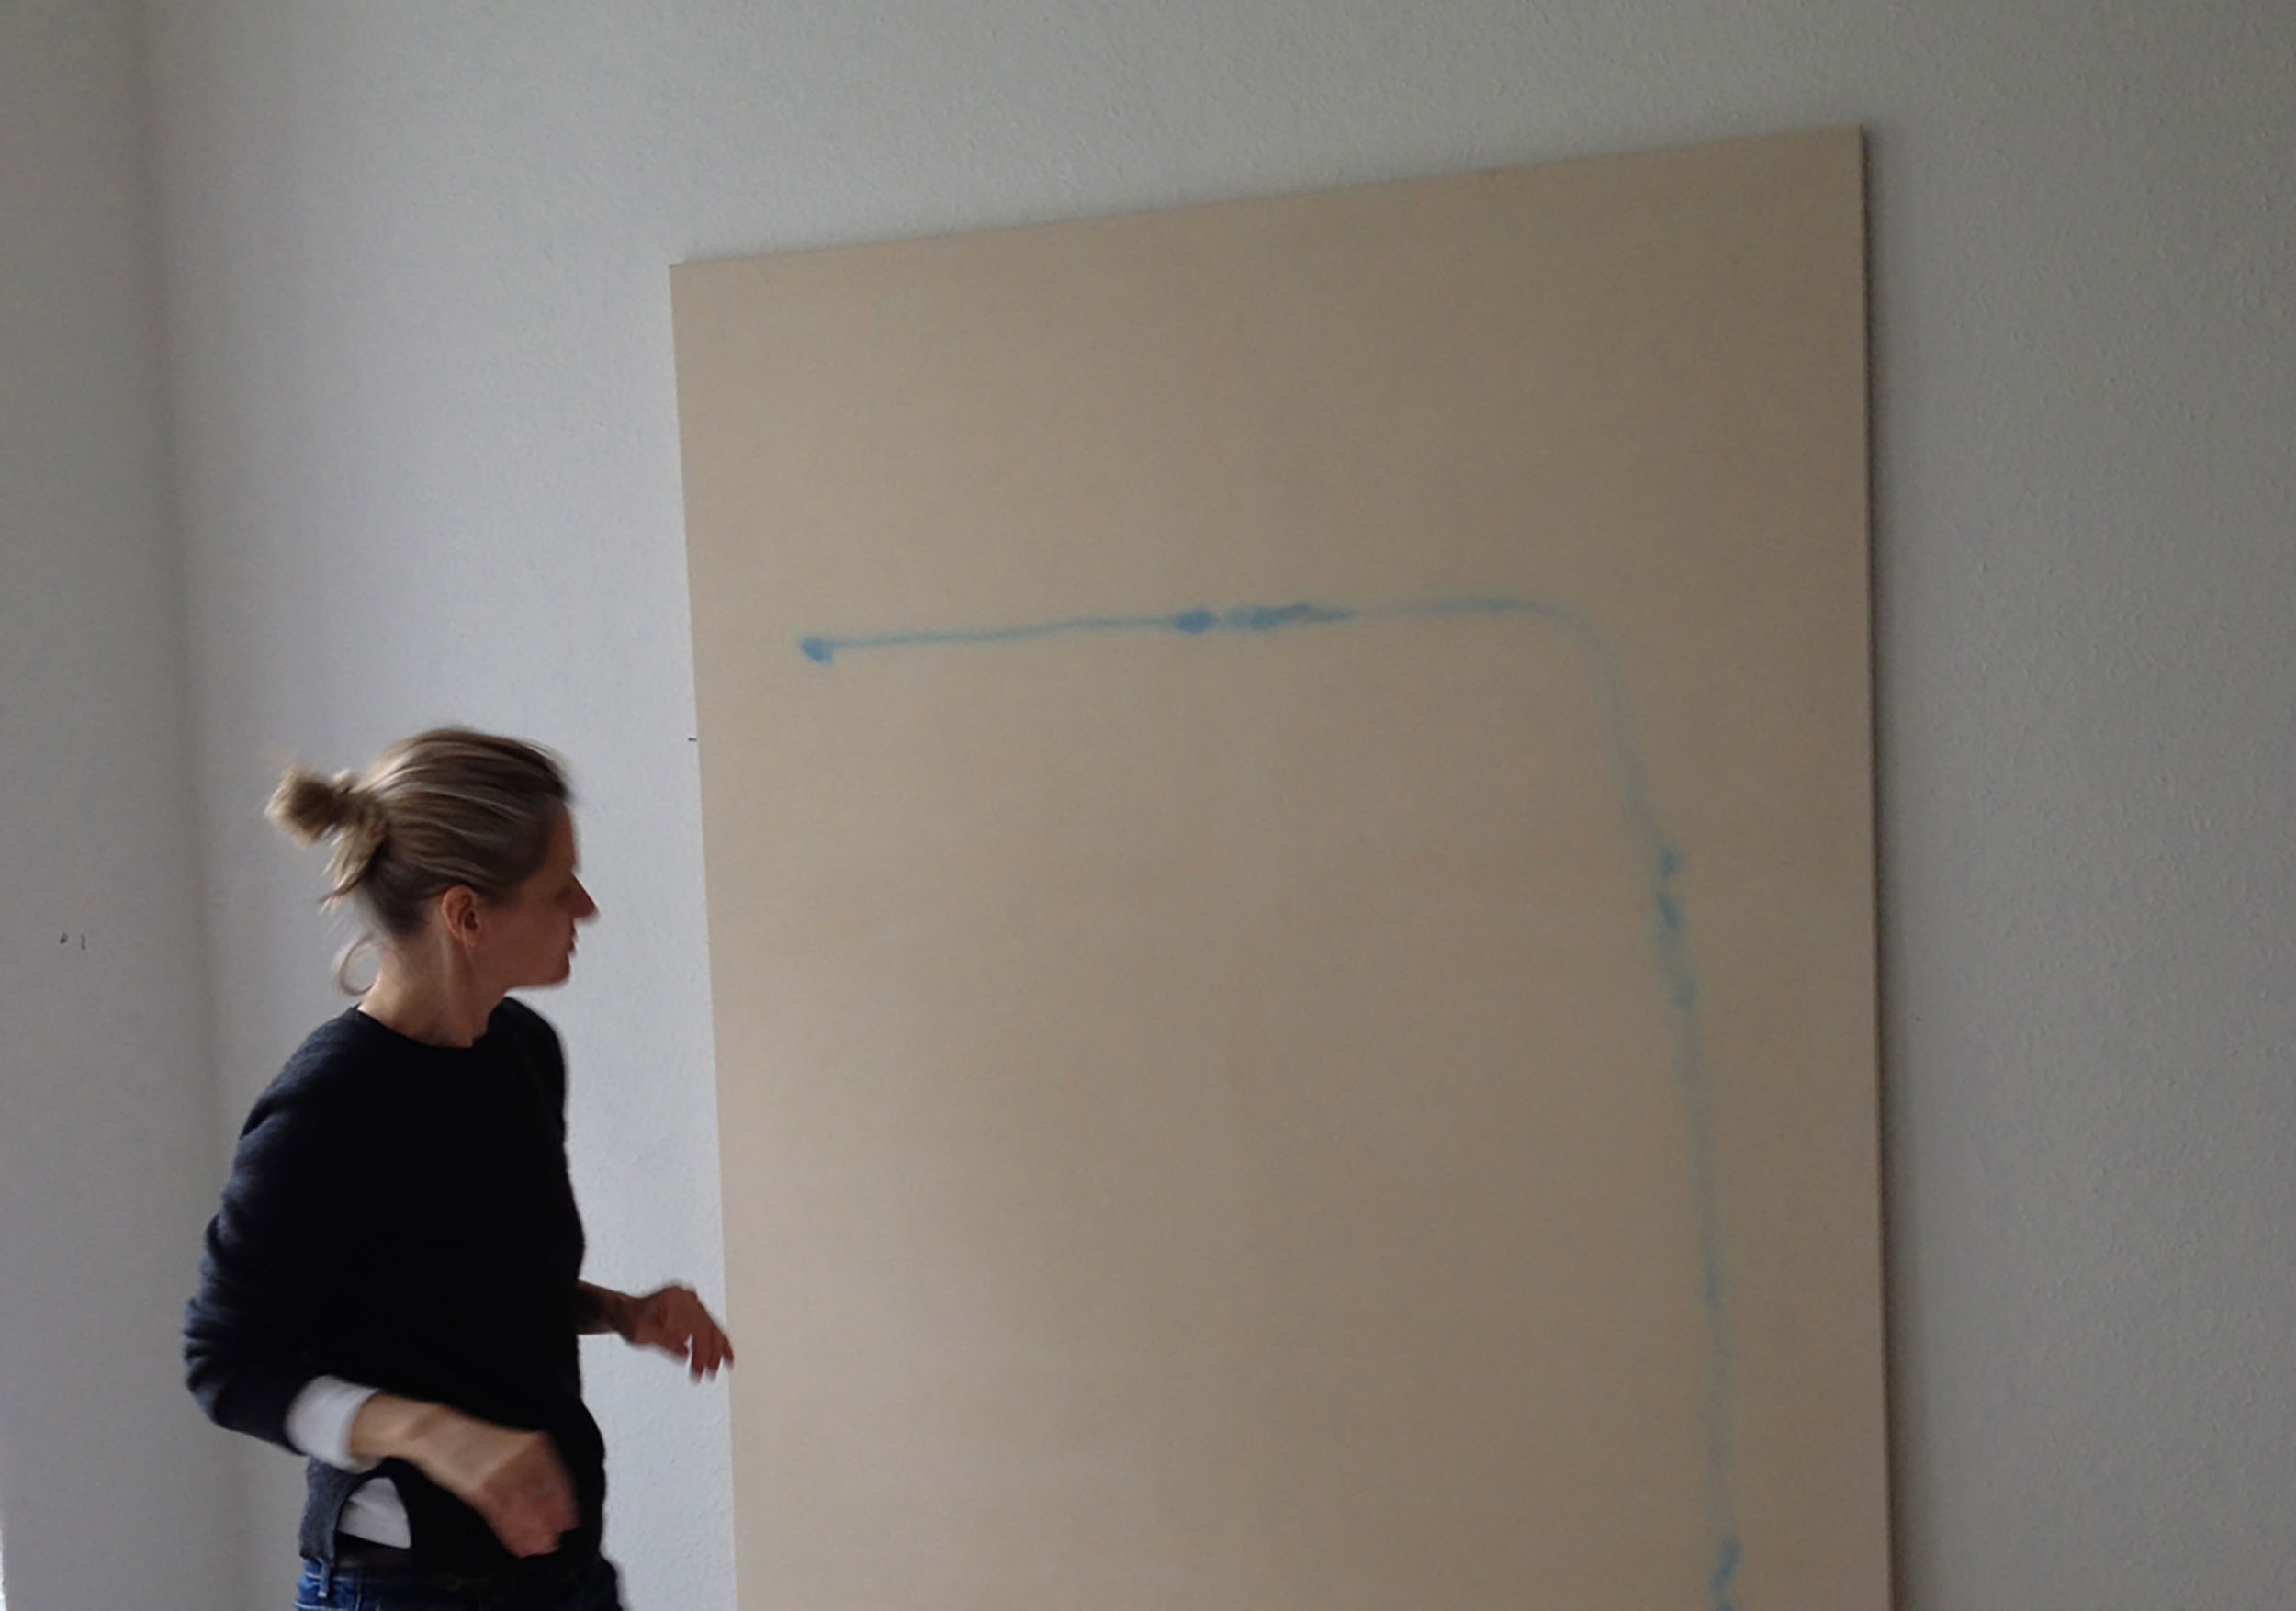 Untitled  (work in progress), 2016 acrylic on stretched raw cotton canvas 230 x 130 cm Refer to first blog post image for finished work